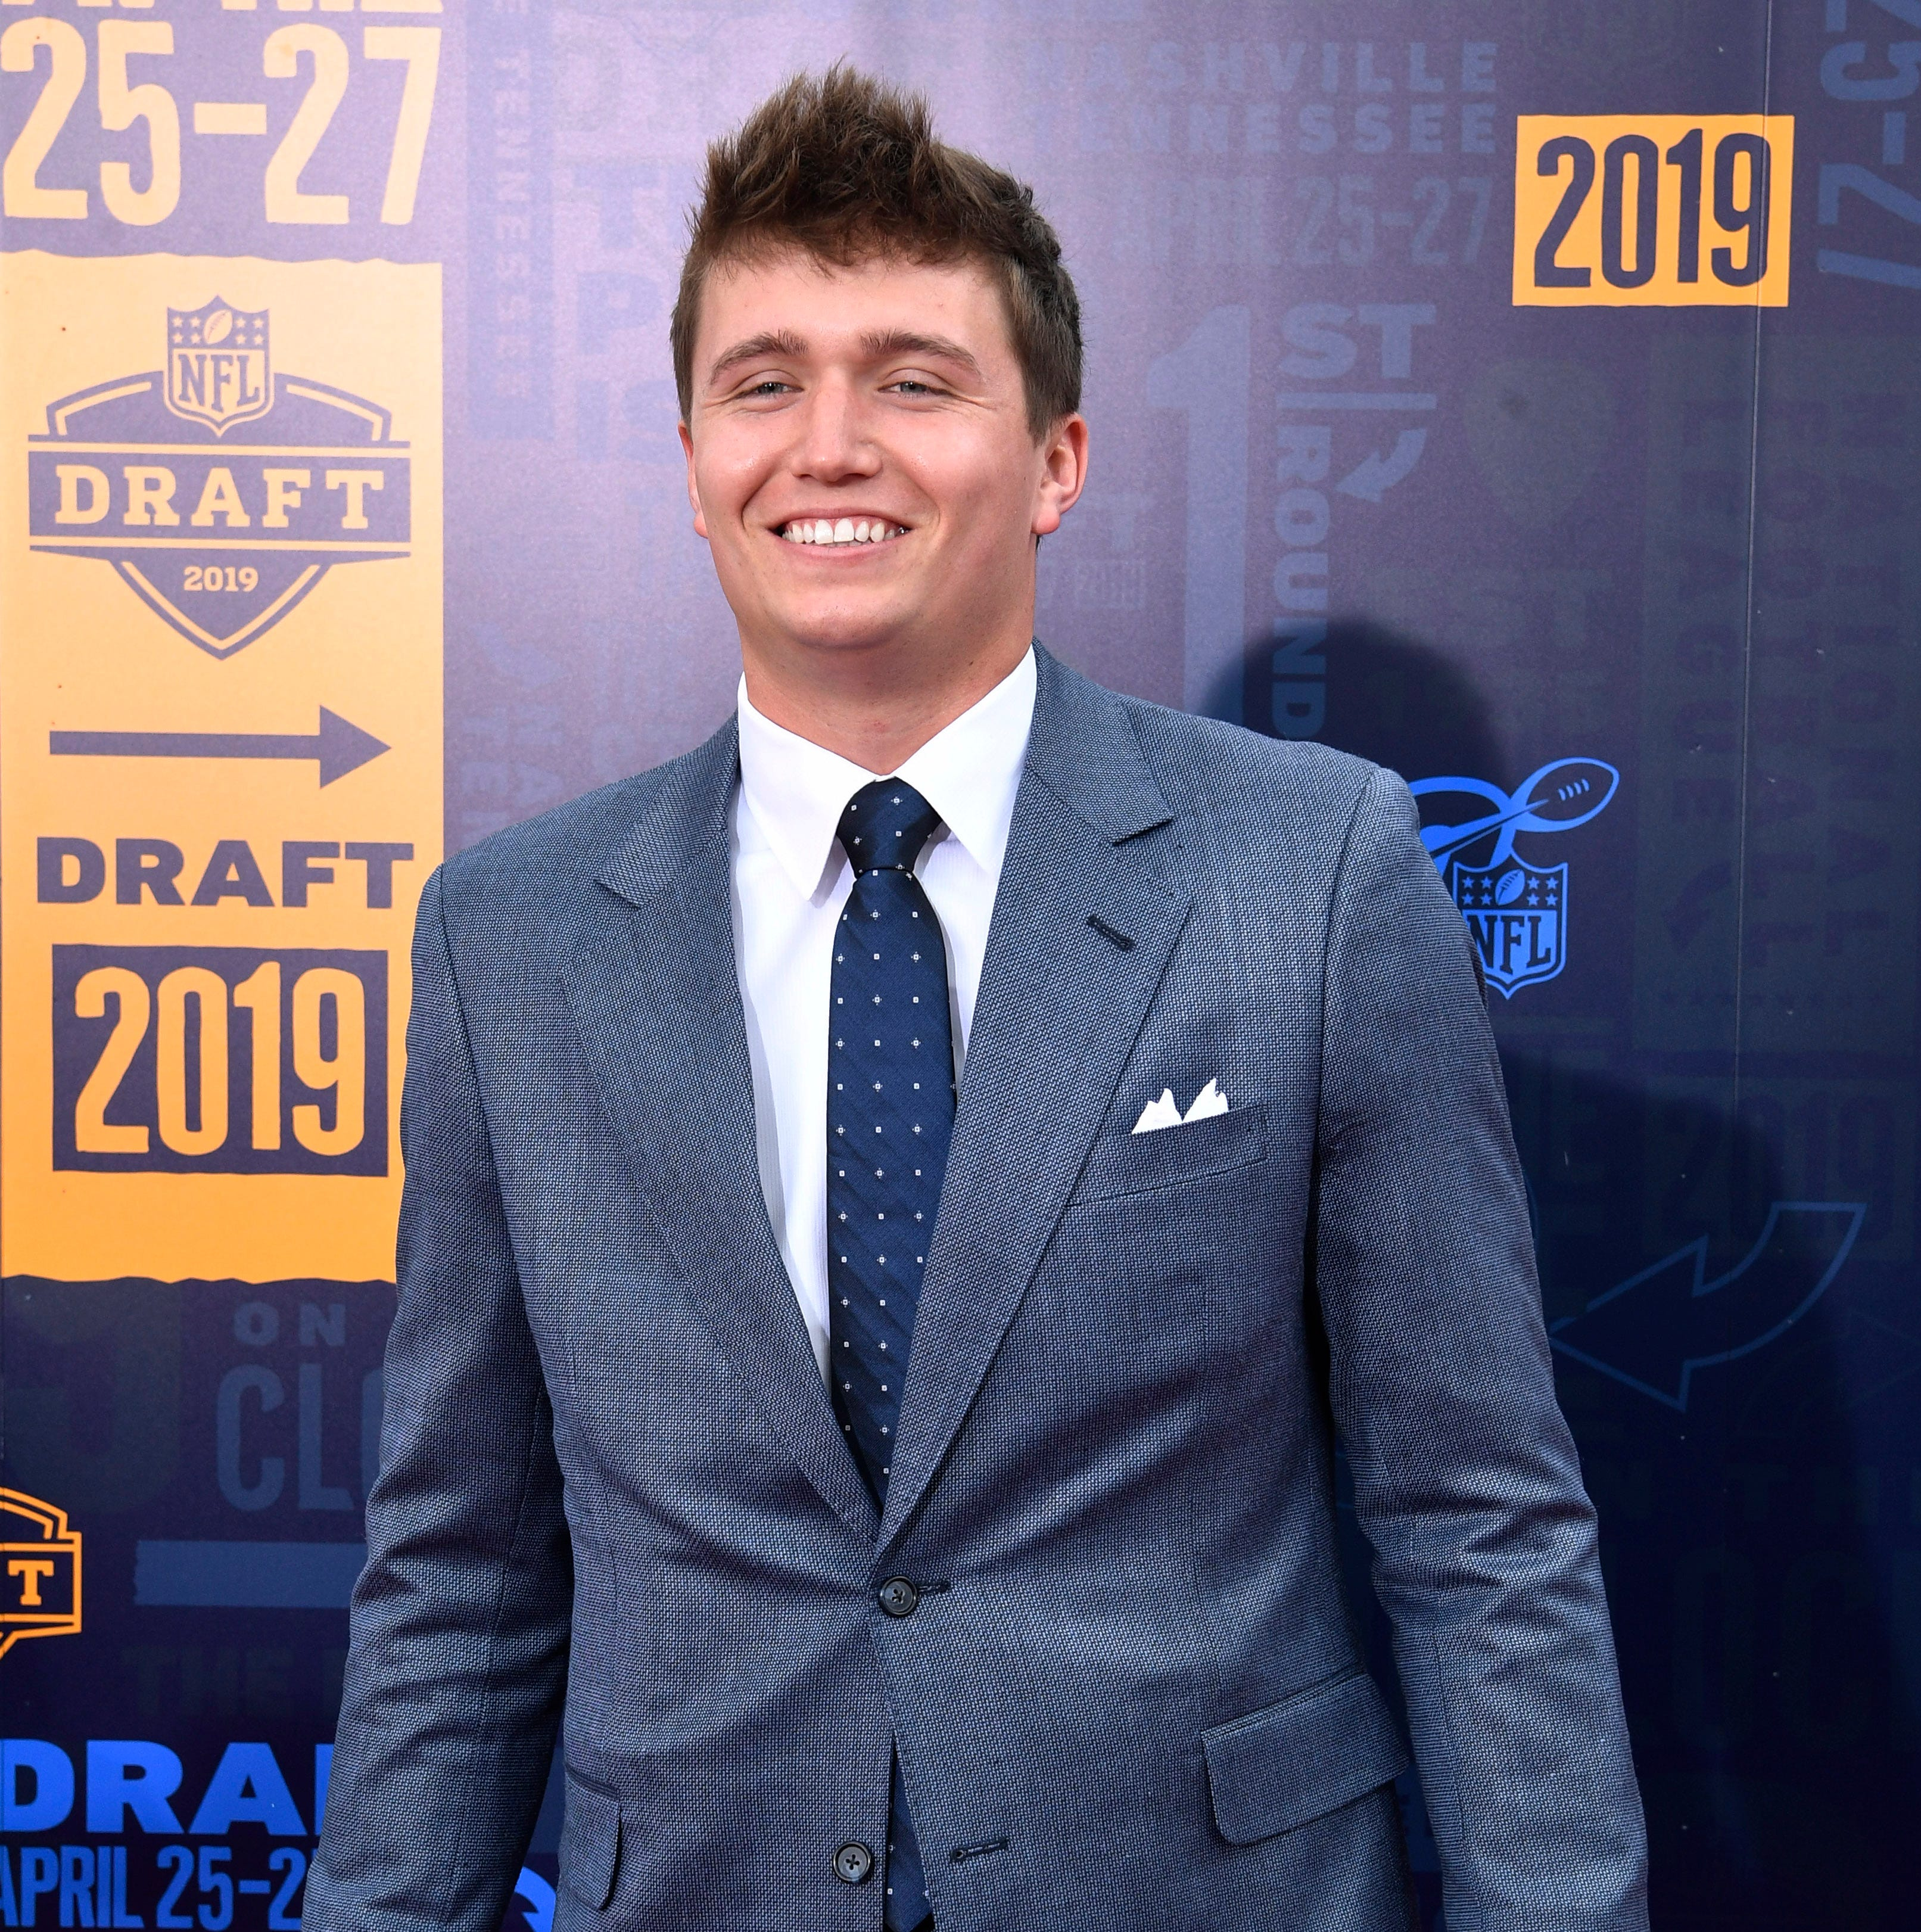 Drew Lock slid into the second round of NFL Draft. Why?